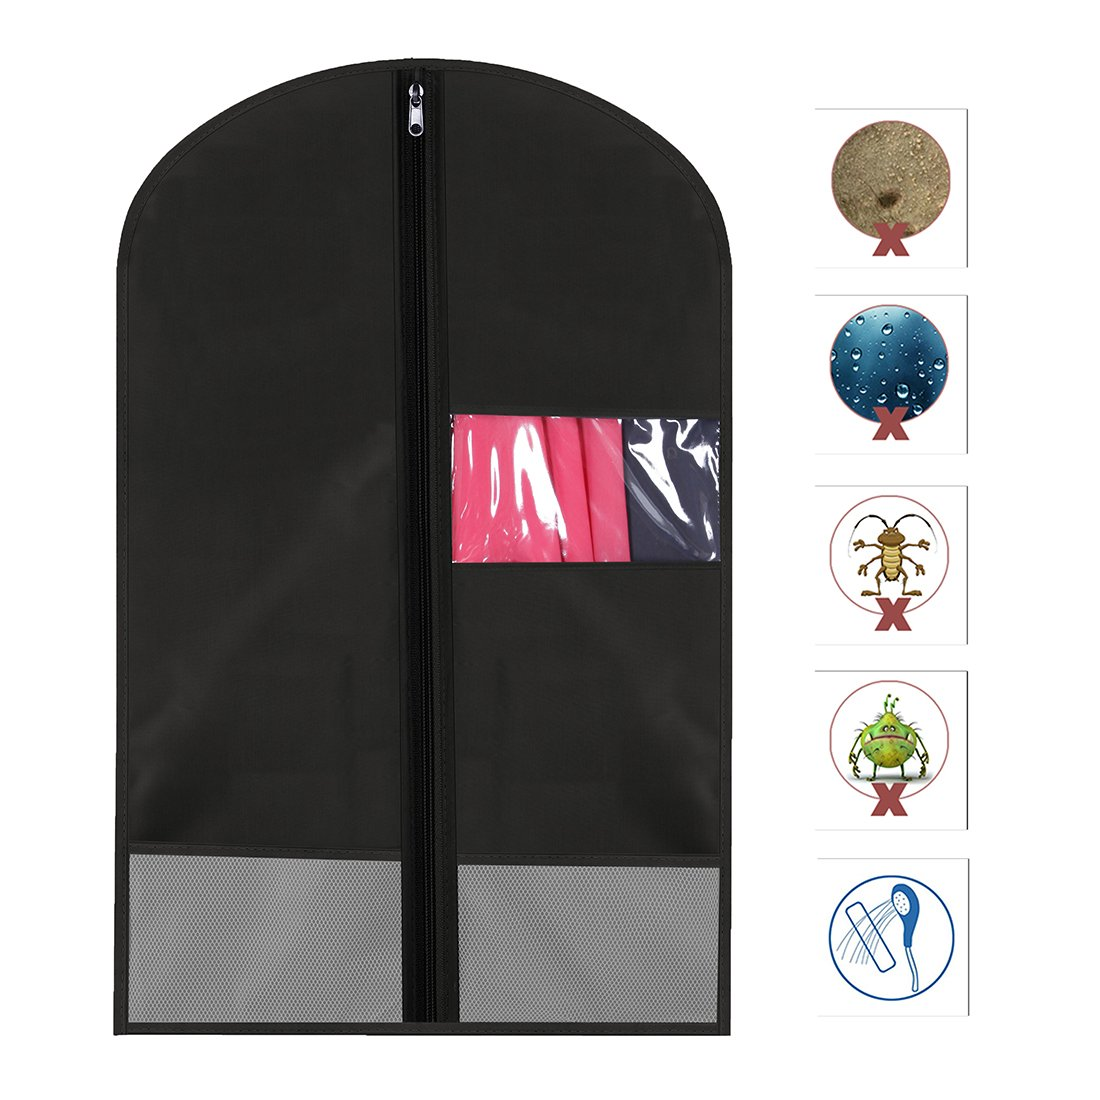 Favorest Breathable Dust-Proof Garment Bag with Clear Window and 2 Mesh Pockets 41x22.8 Anti-Moth Durable Oxford Cloth Suit Covers with Zipper for Suit Dresses Storage or Travel Linens M, Black